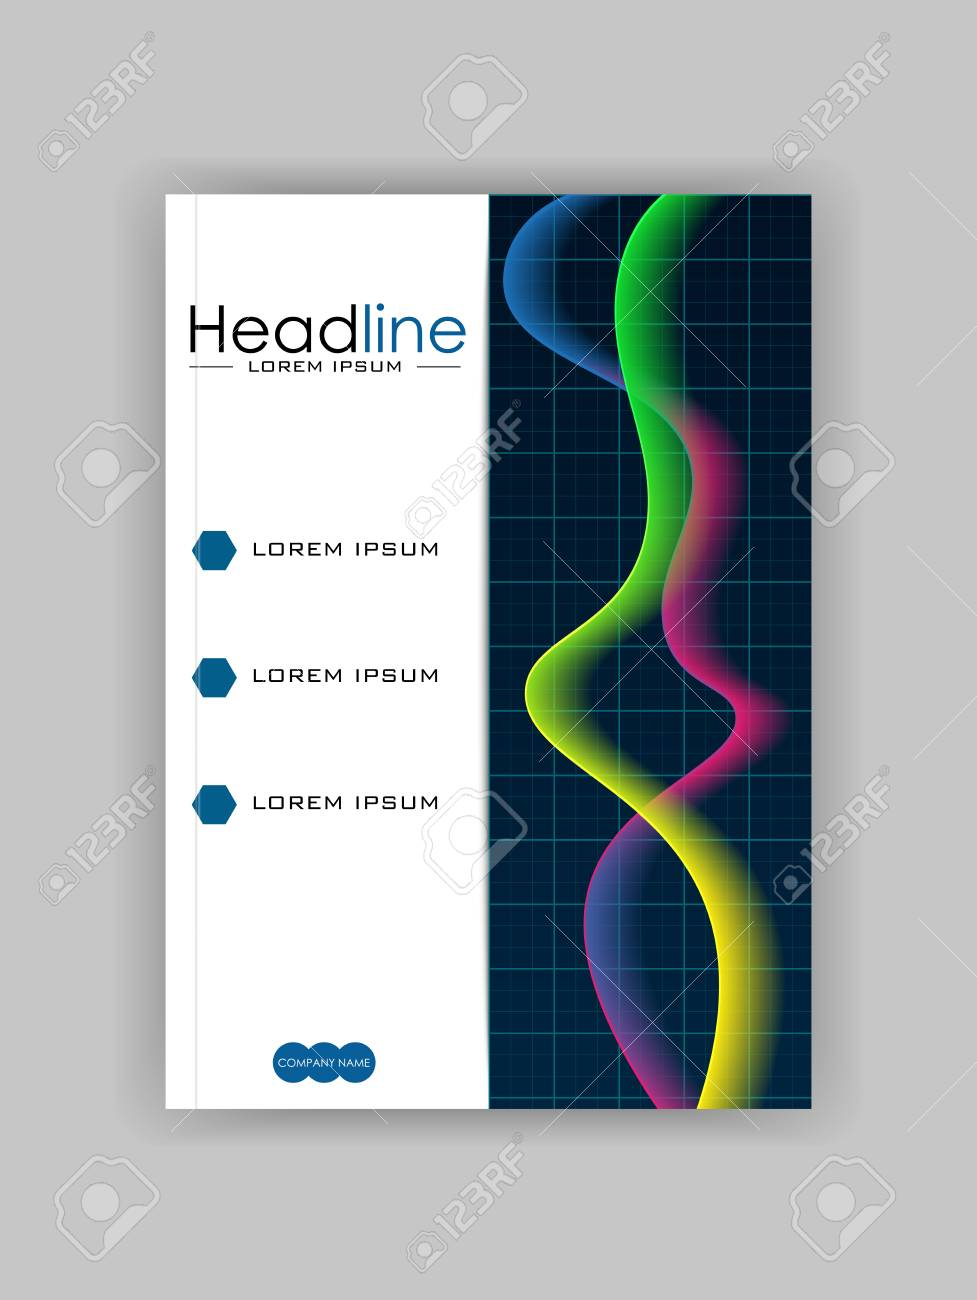 Book cover diagram electrical drawing wiring diagram glowing diagram book cover design with colourful waves good rh 123rf com book cover crochet diagram venn diagram books ccuart Image collections